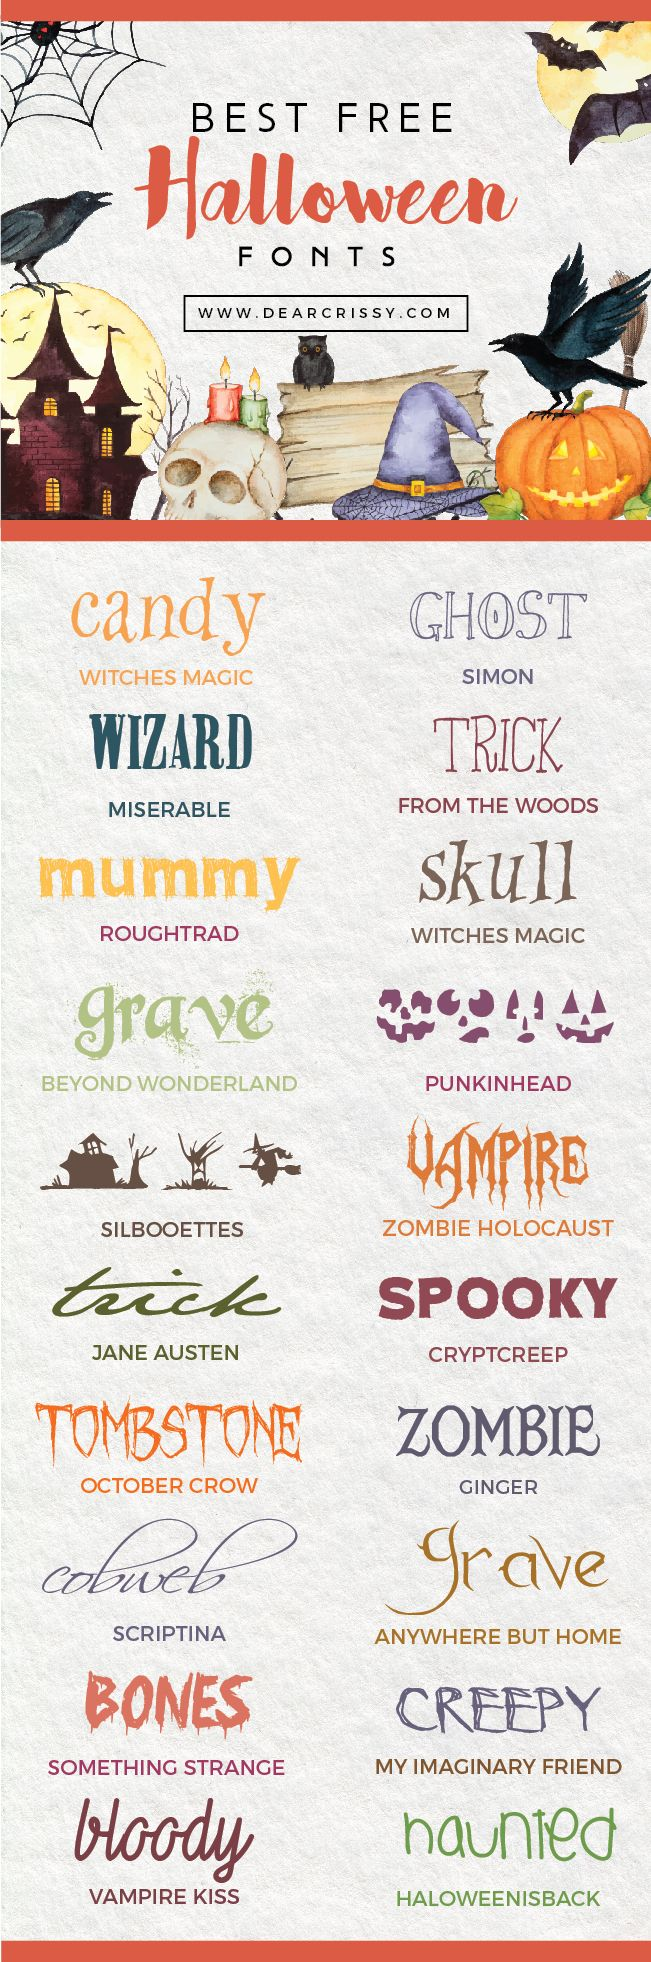 Boo! Don't miss my collection of the best free Halloween fonts. From spooky to terrifying, these free fonts are perfect for your next project.